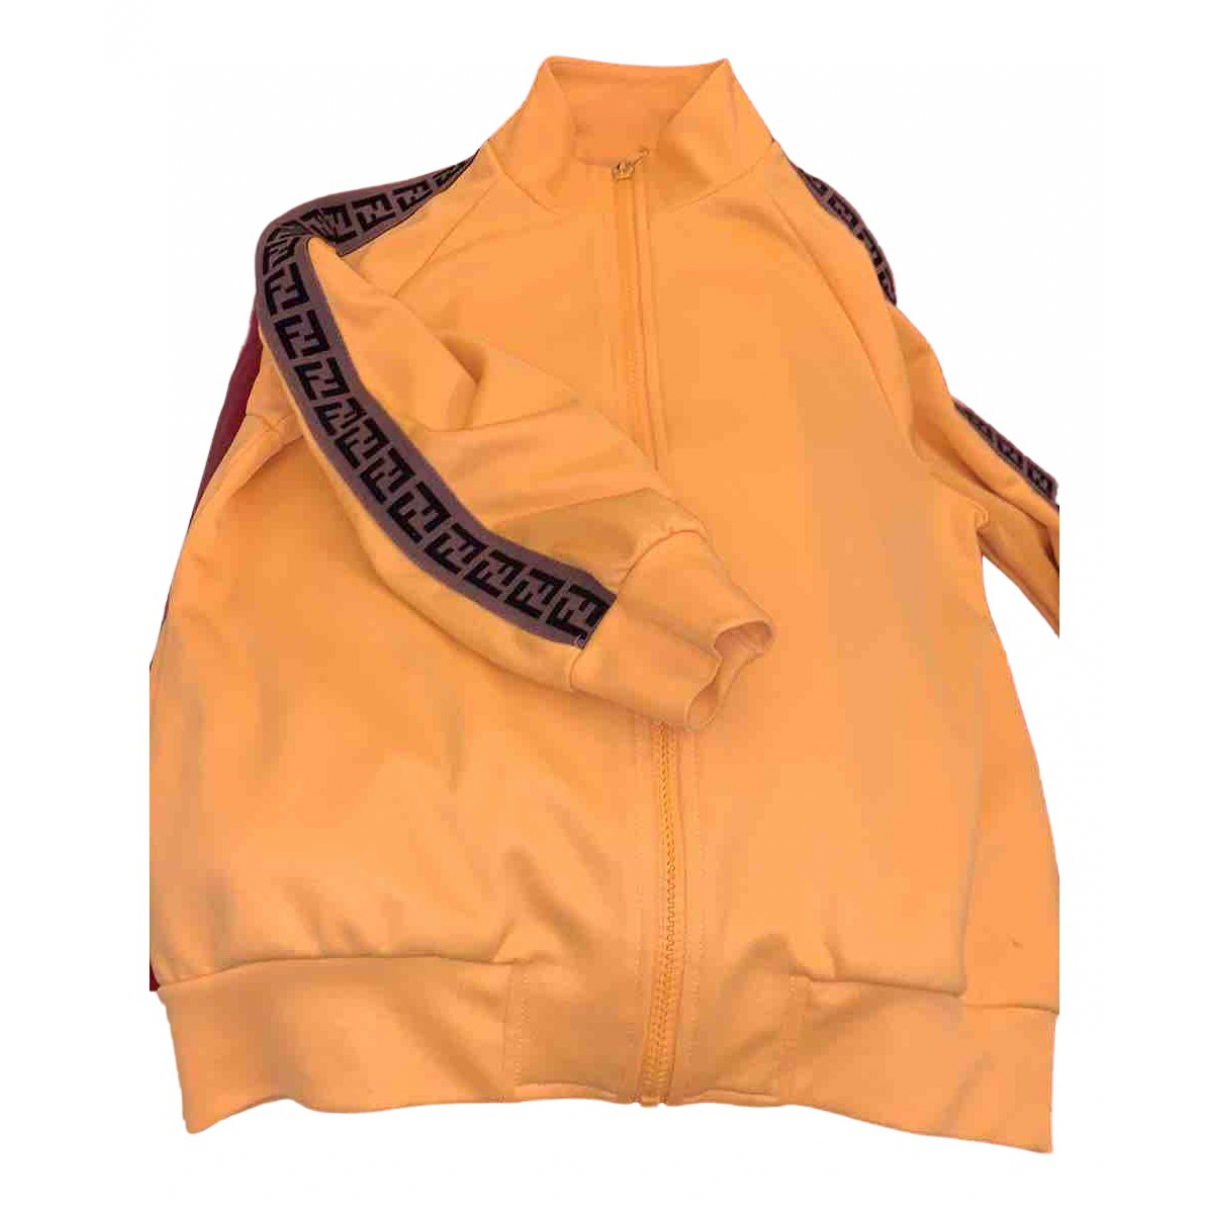 Fendi N Yellow Cotton Knitwear for Kids 10 years - up to 142cm FR